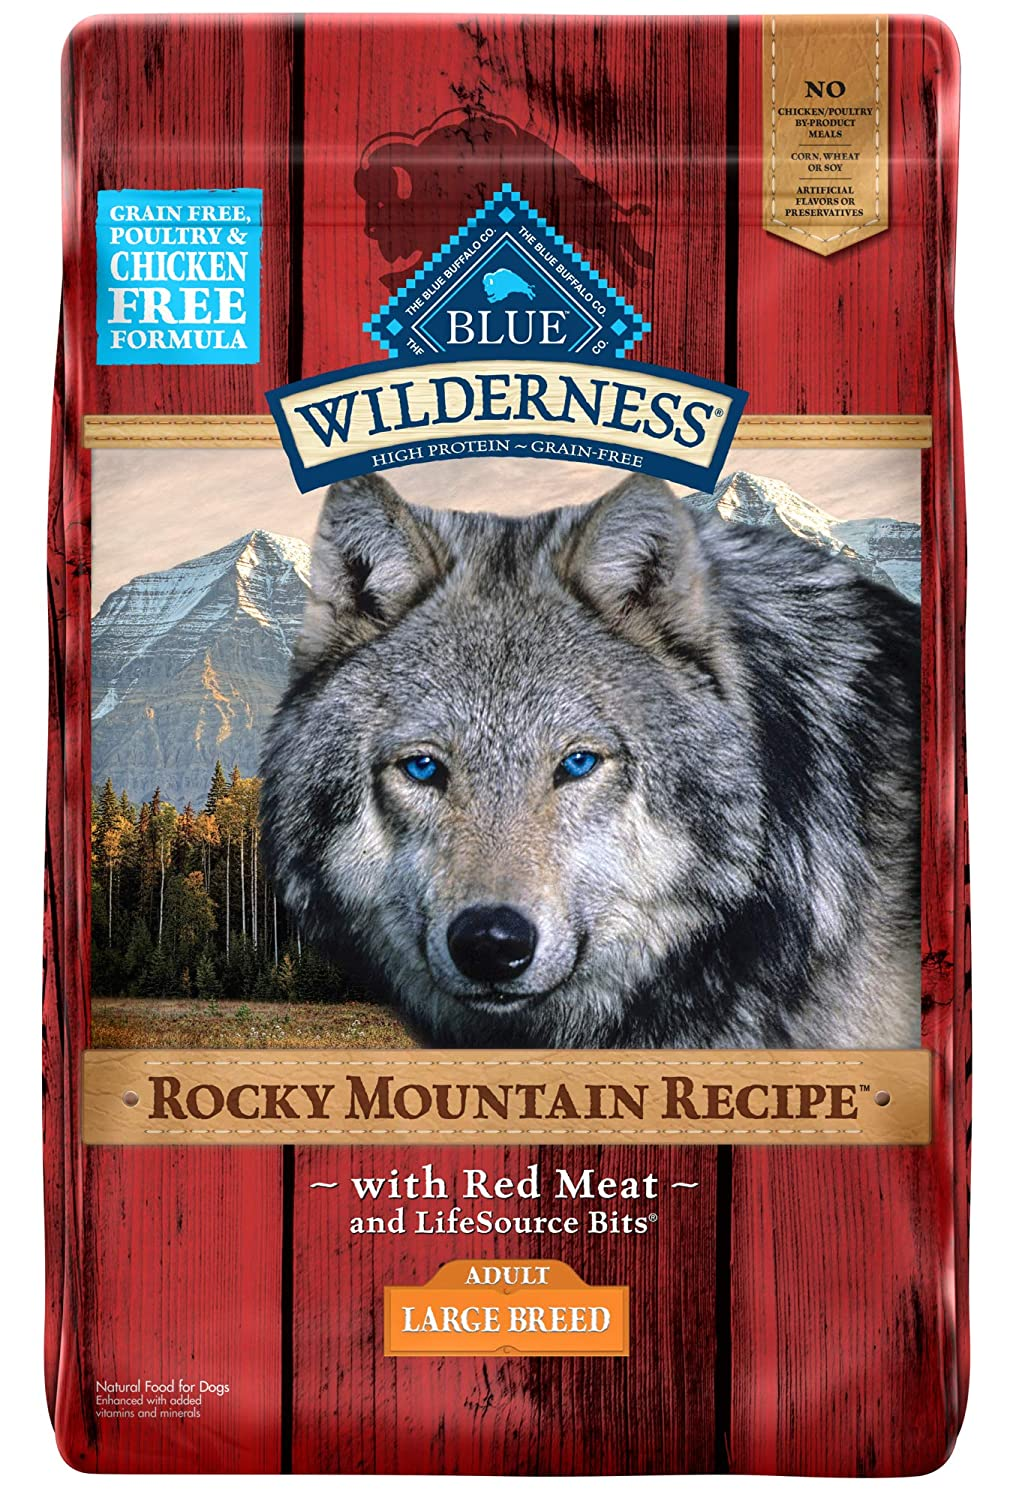 2.Blue Buffalo Wilderness Rocky Mountain Recipe Large Breed Dry Dog Food